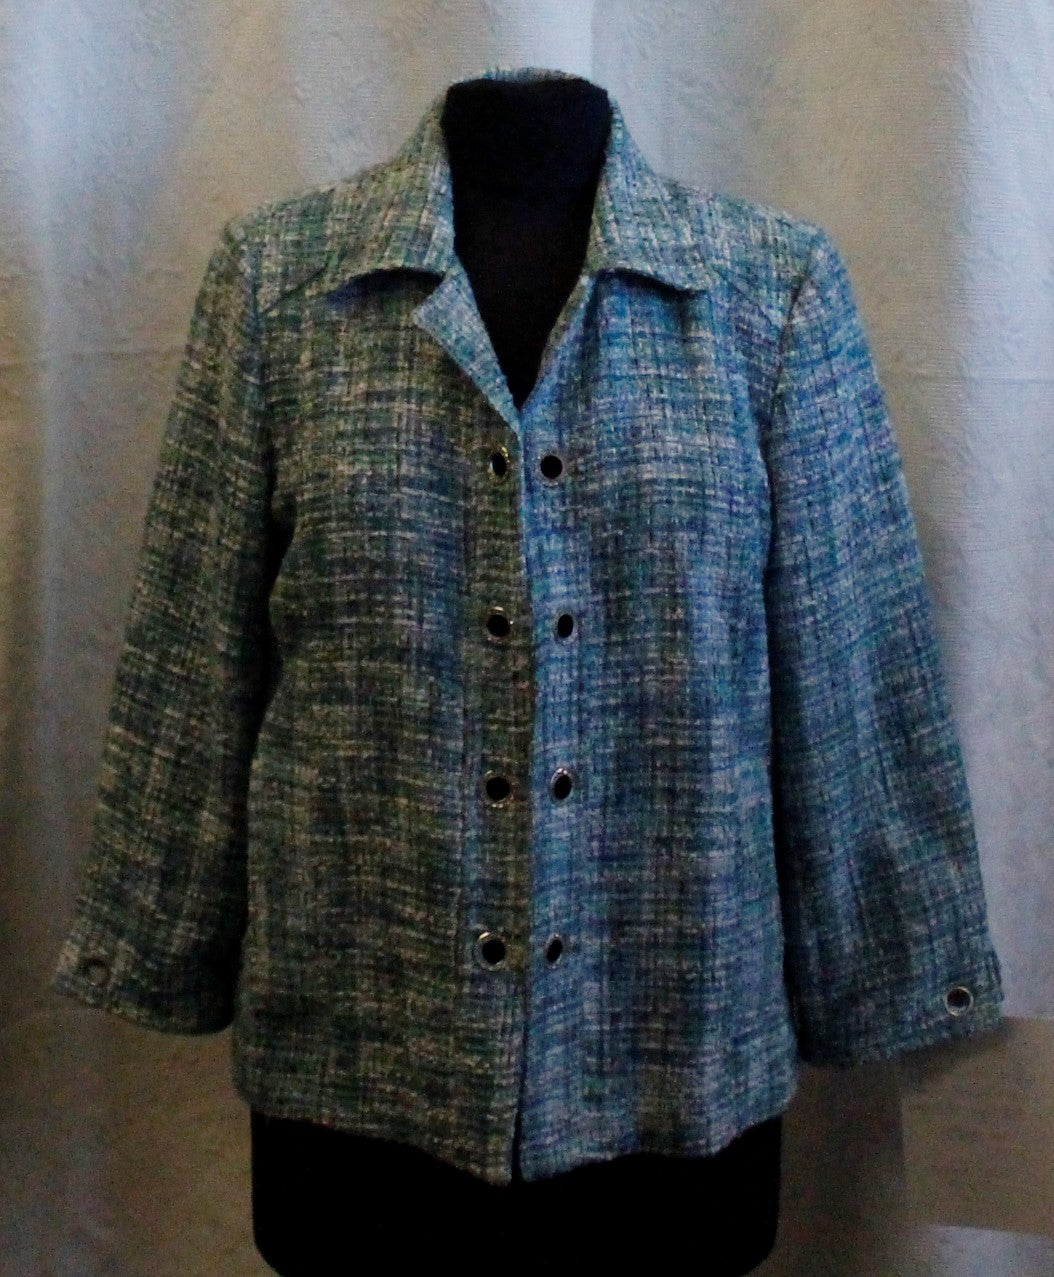 Women's Tweed Jacket                             M                                           1/27A